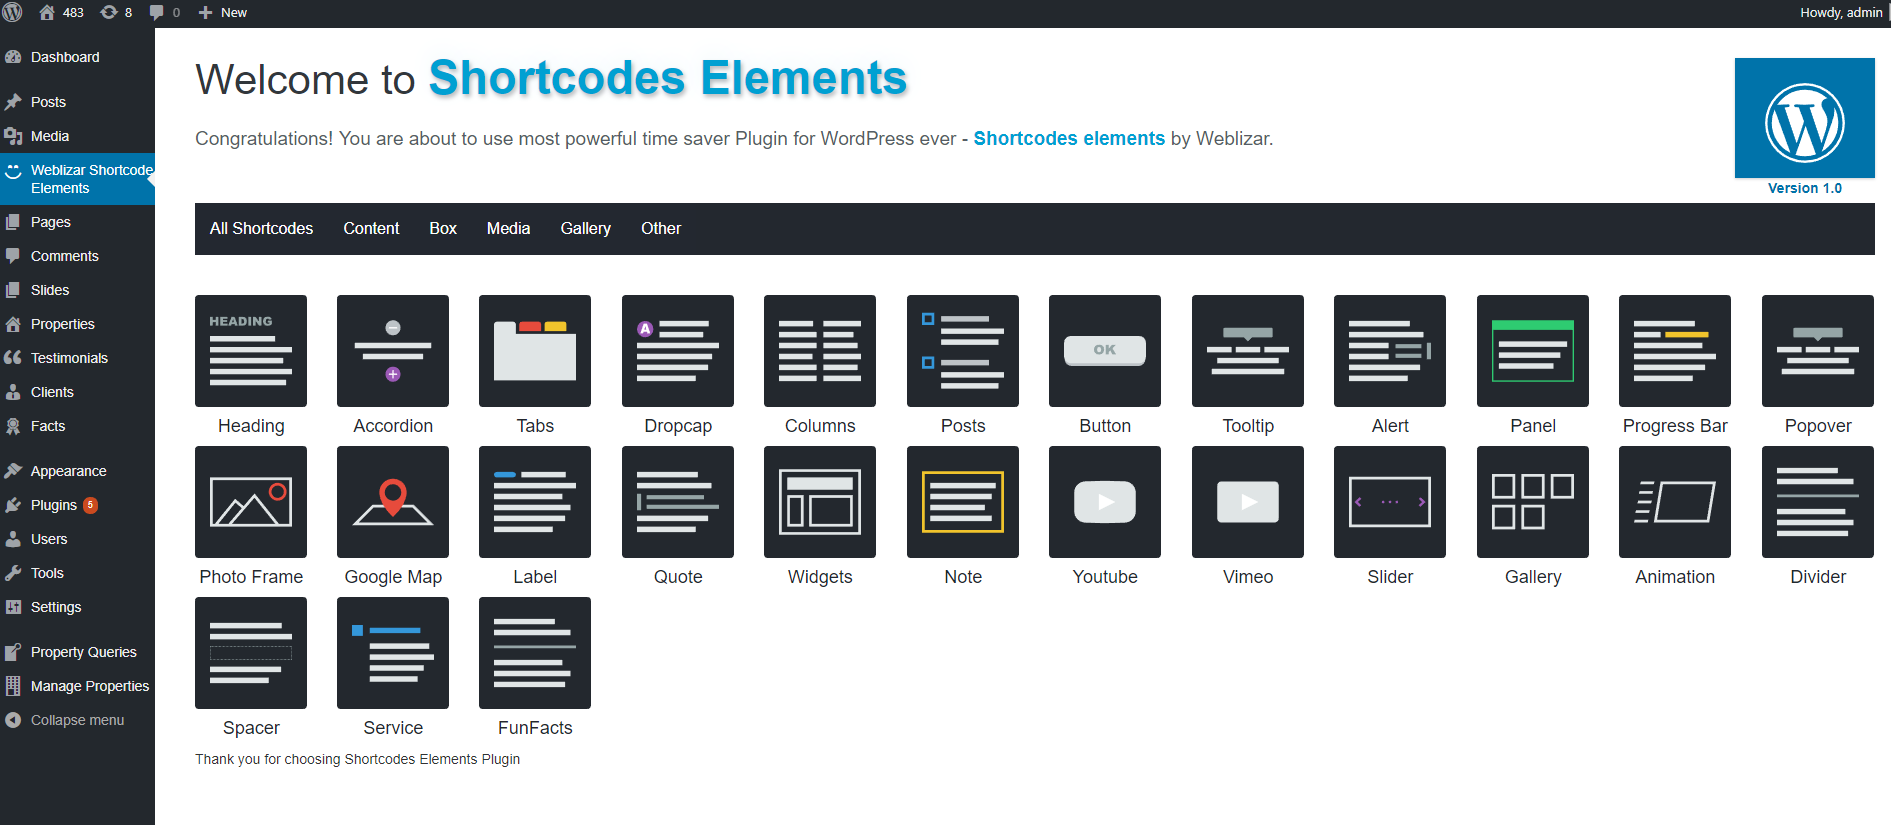 Shortcodes-Elements welcome page.